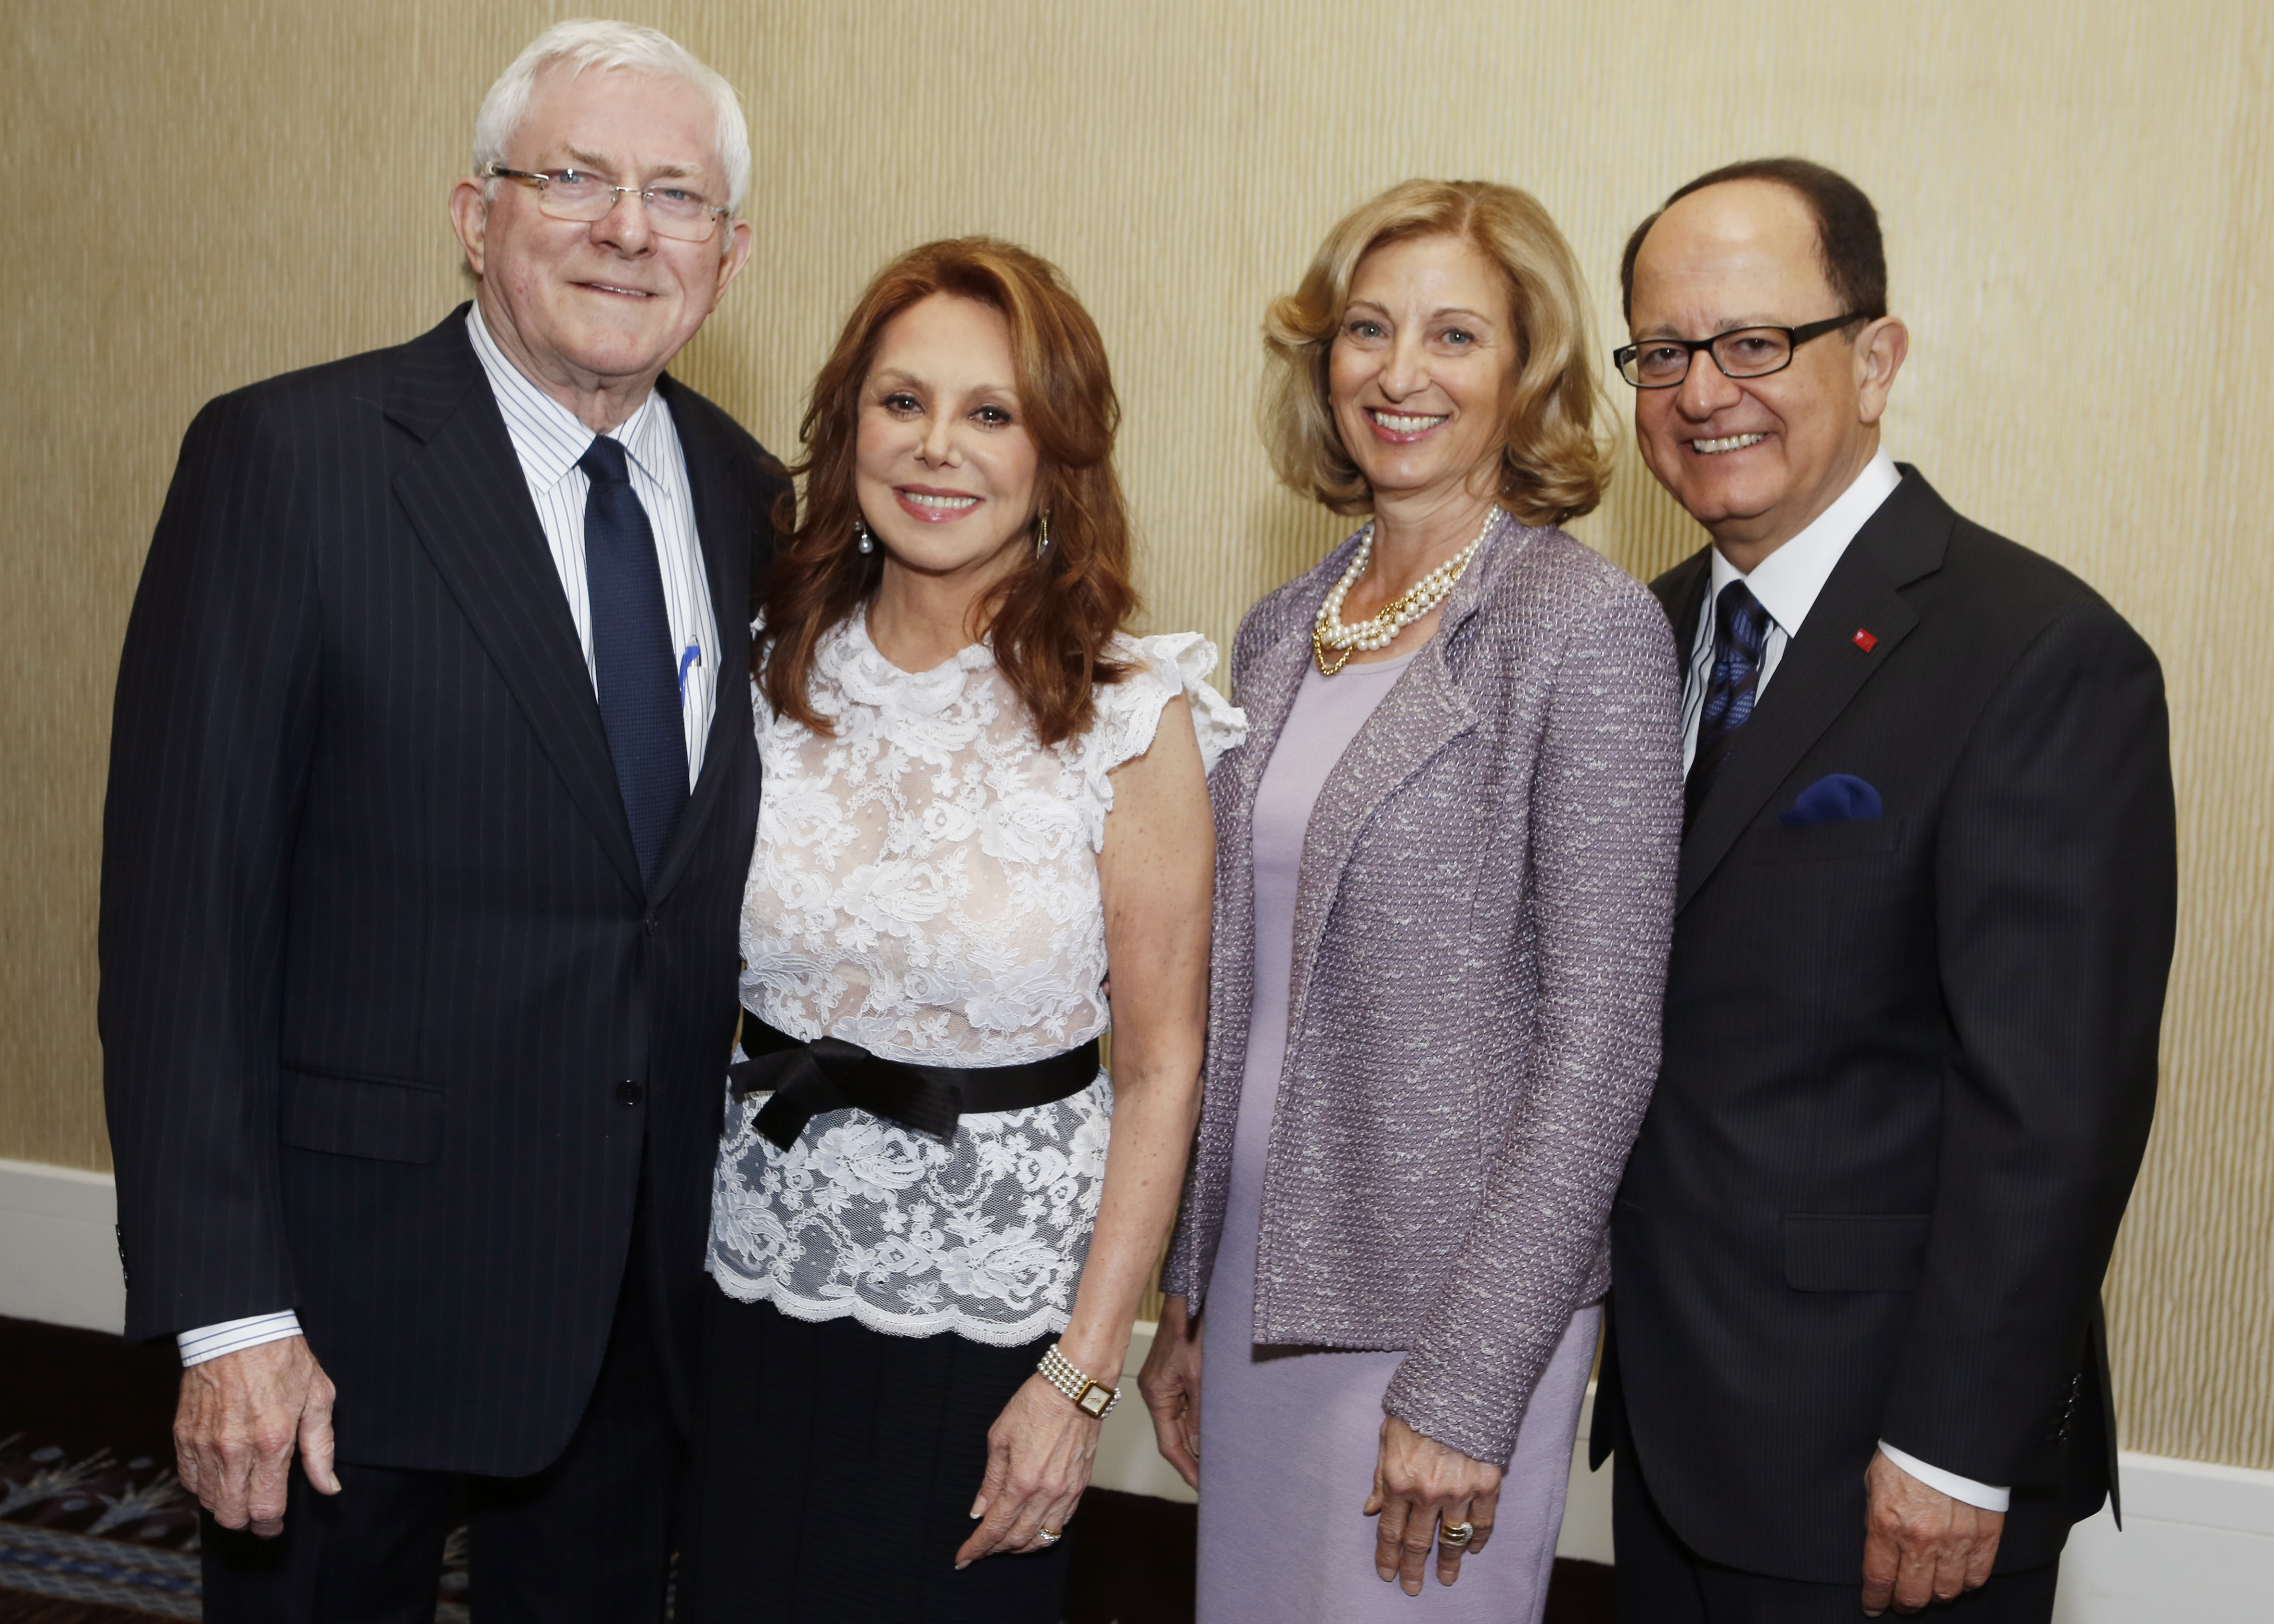 Nikiases and Marlo Thomas honored by Town and Gown - USC News